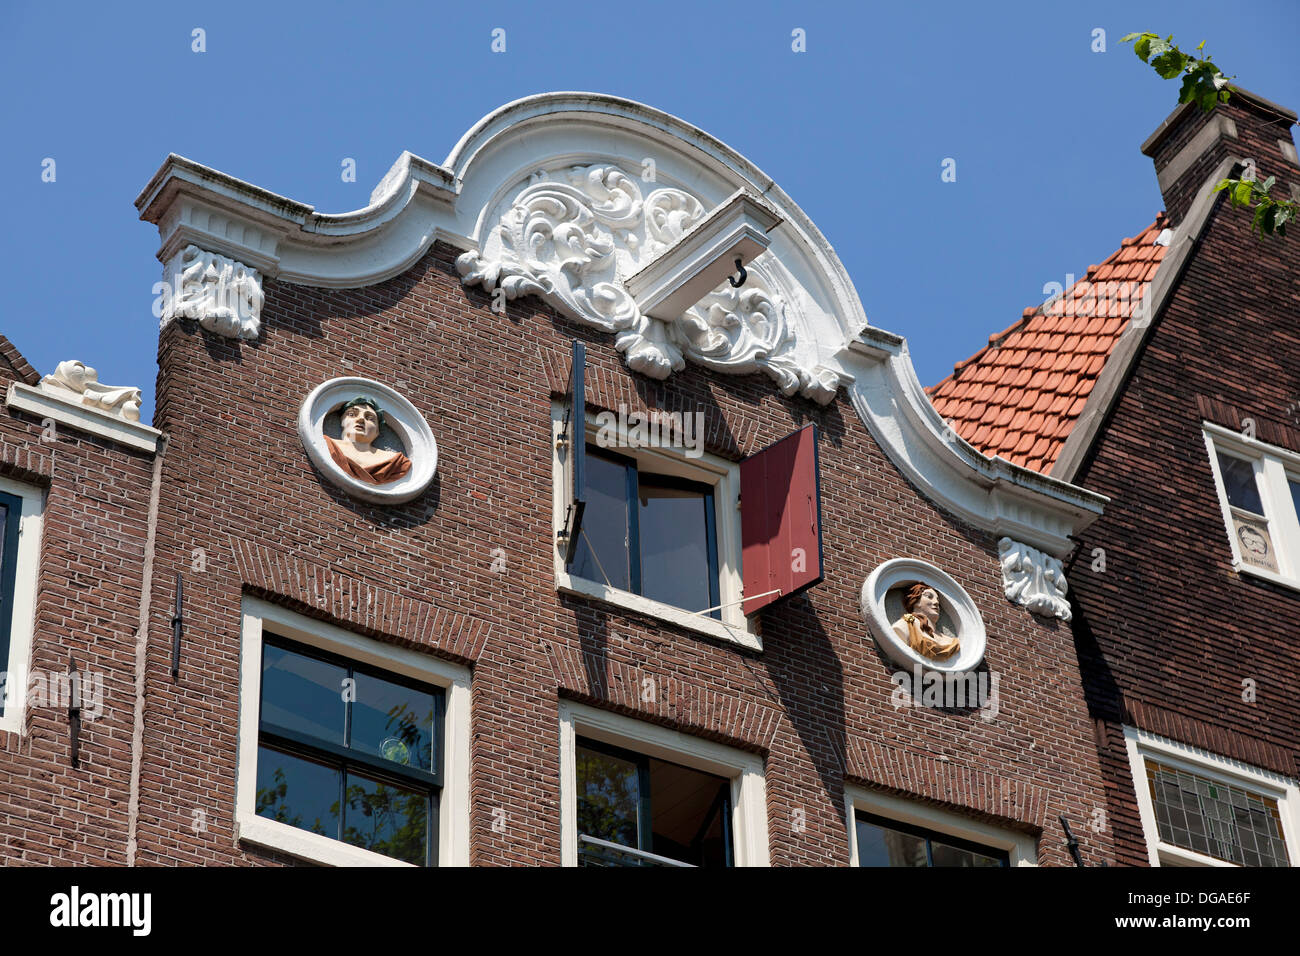 Historic facade in Amsterdam with sculptured portraits - Stock Image